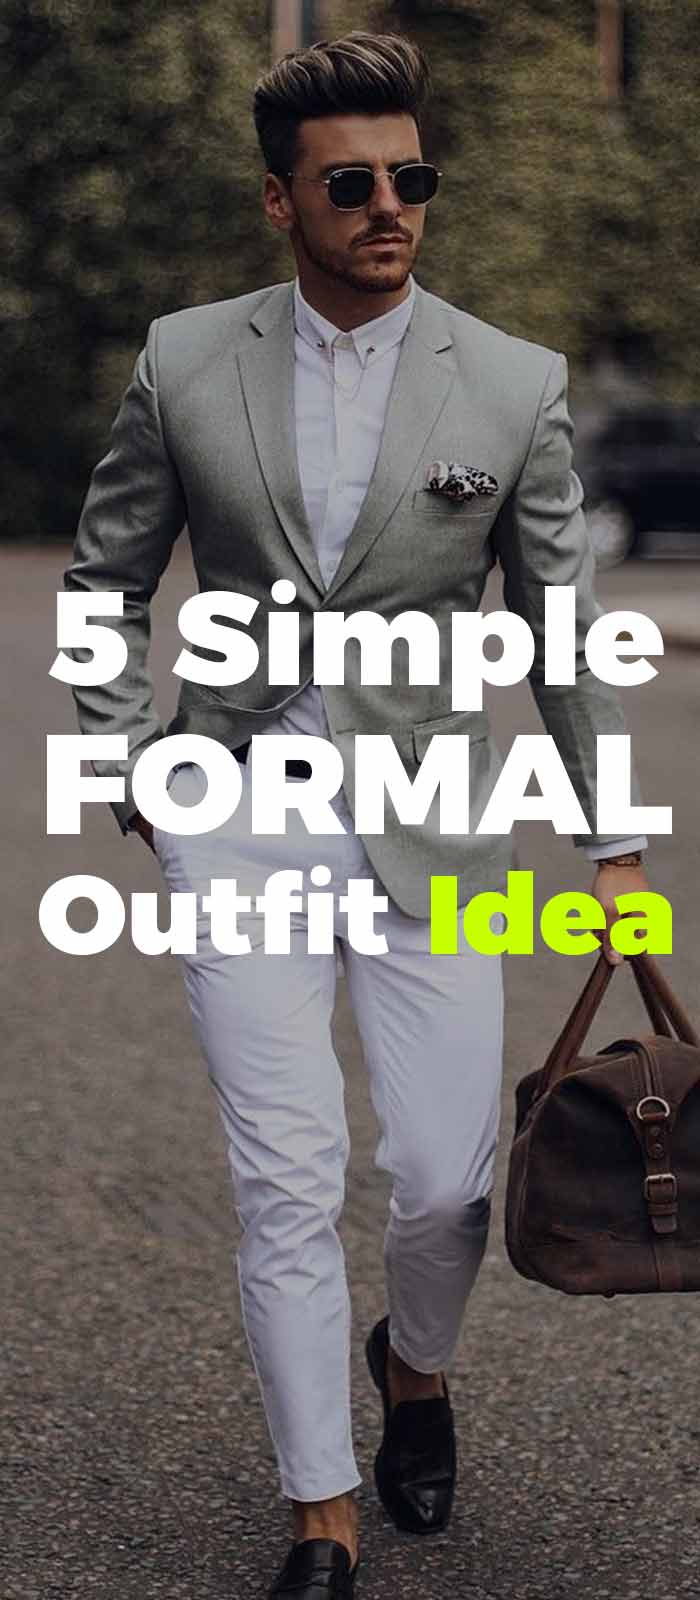 5-simple-formal-outfit-idea